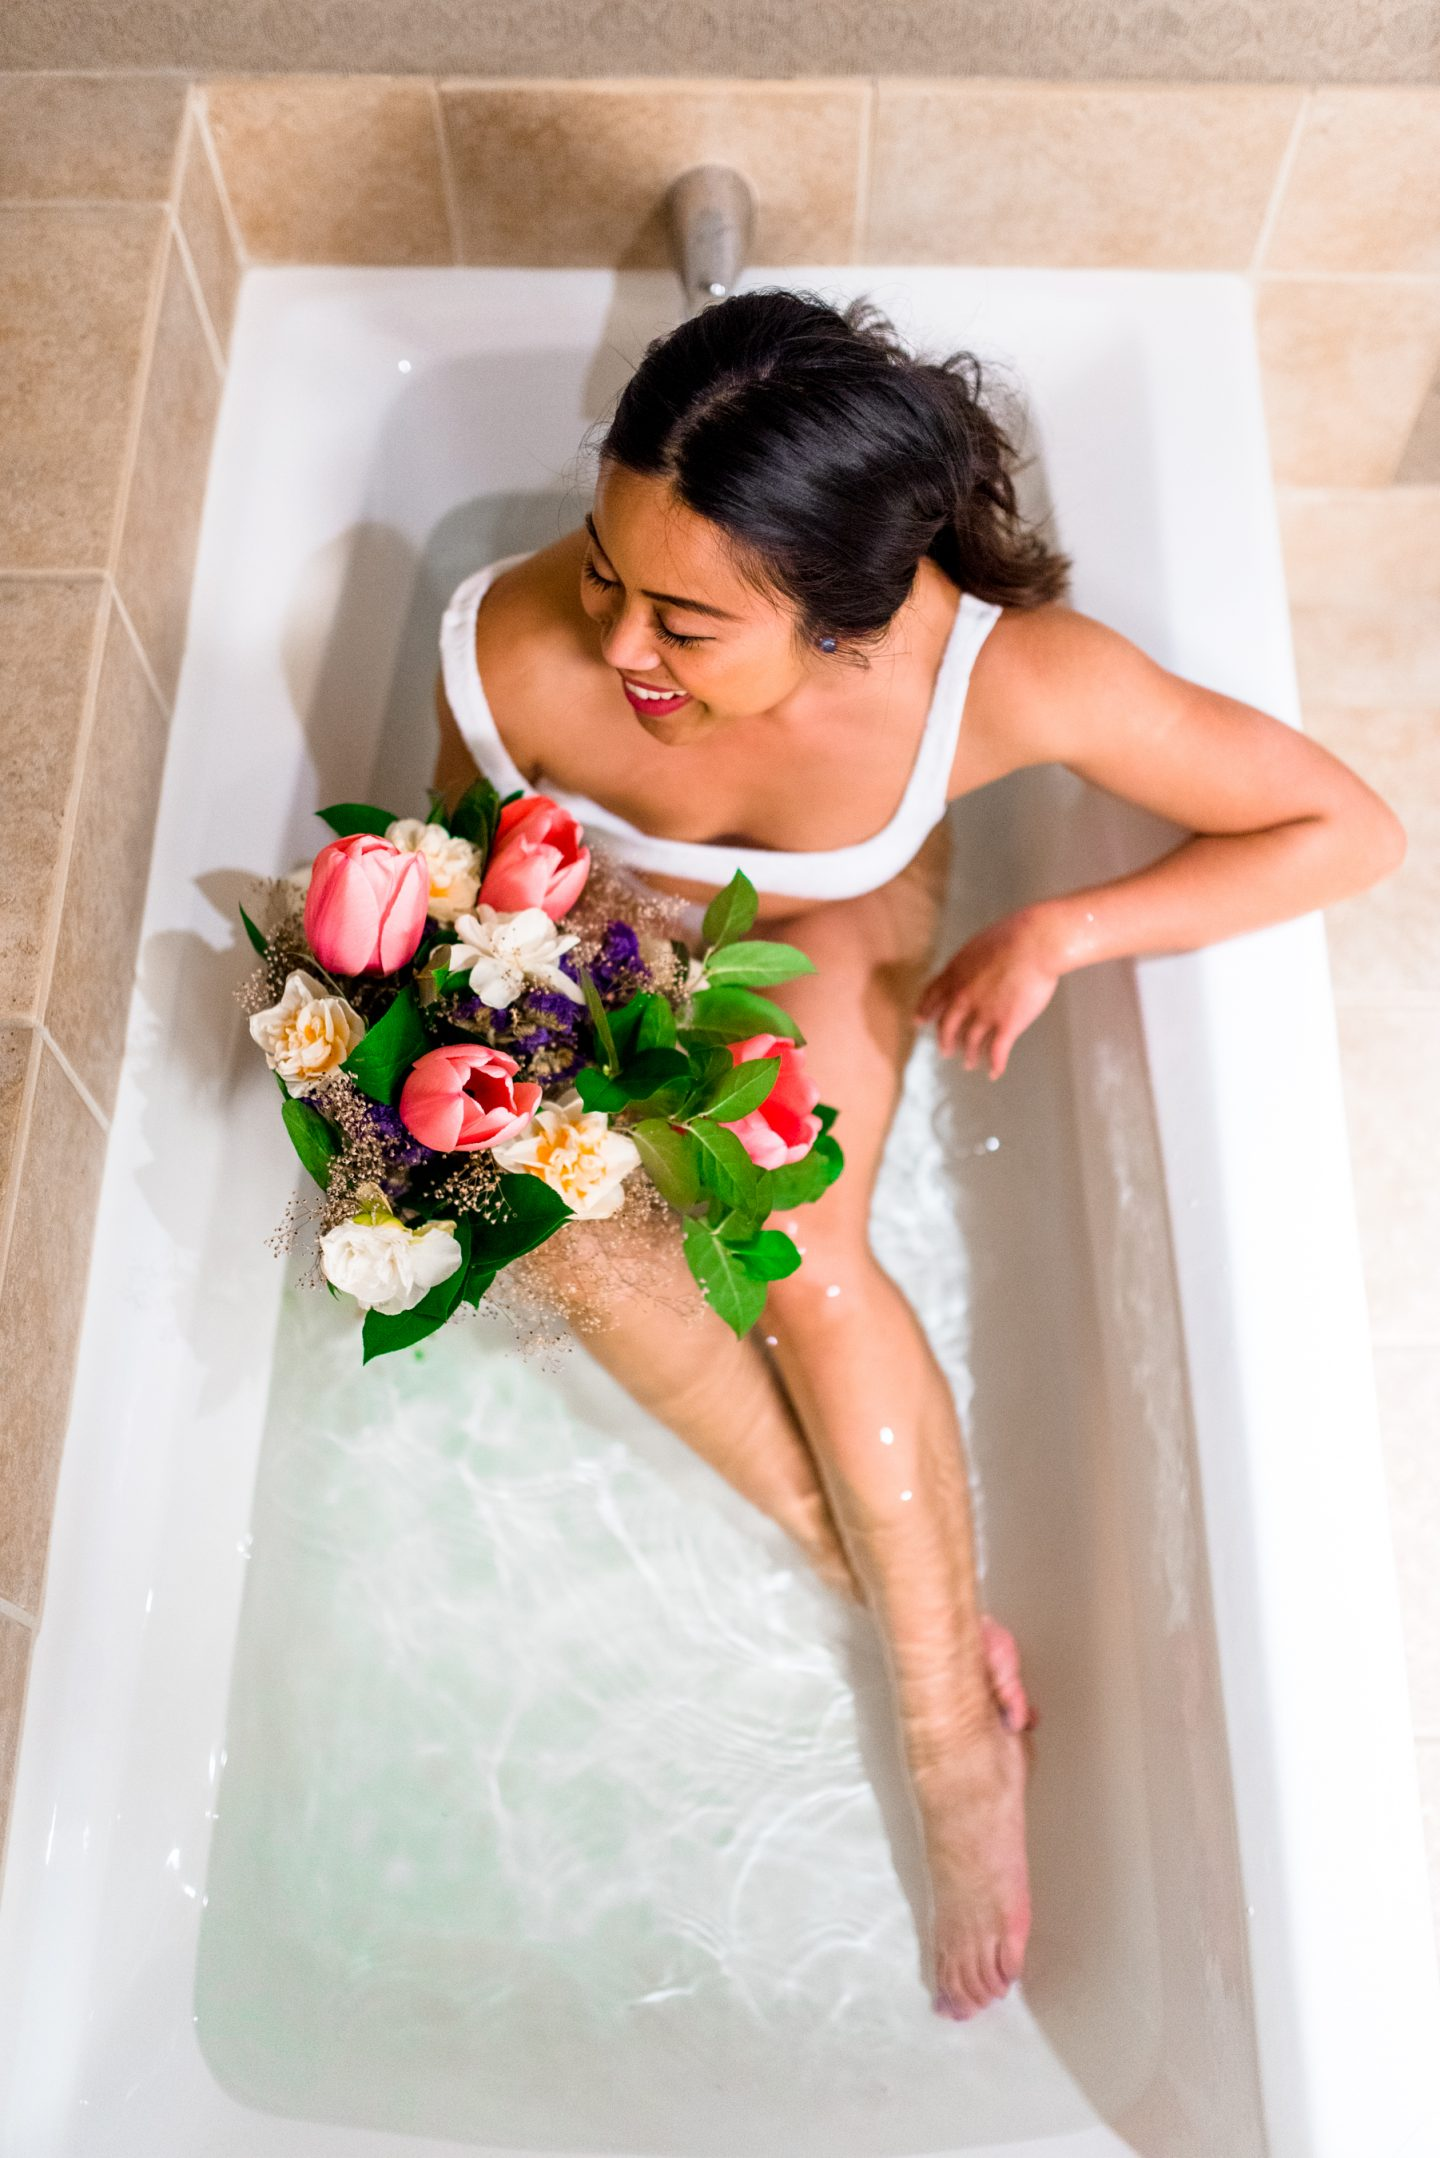 Bathtub floral photos